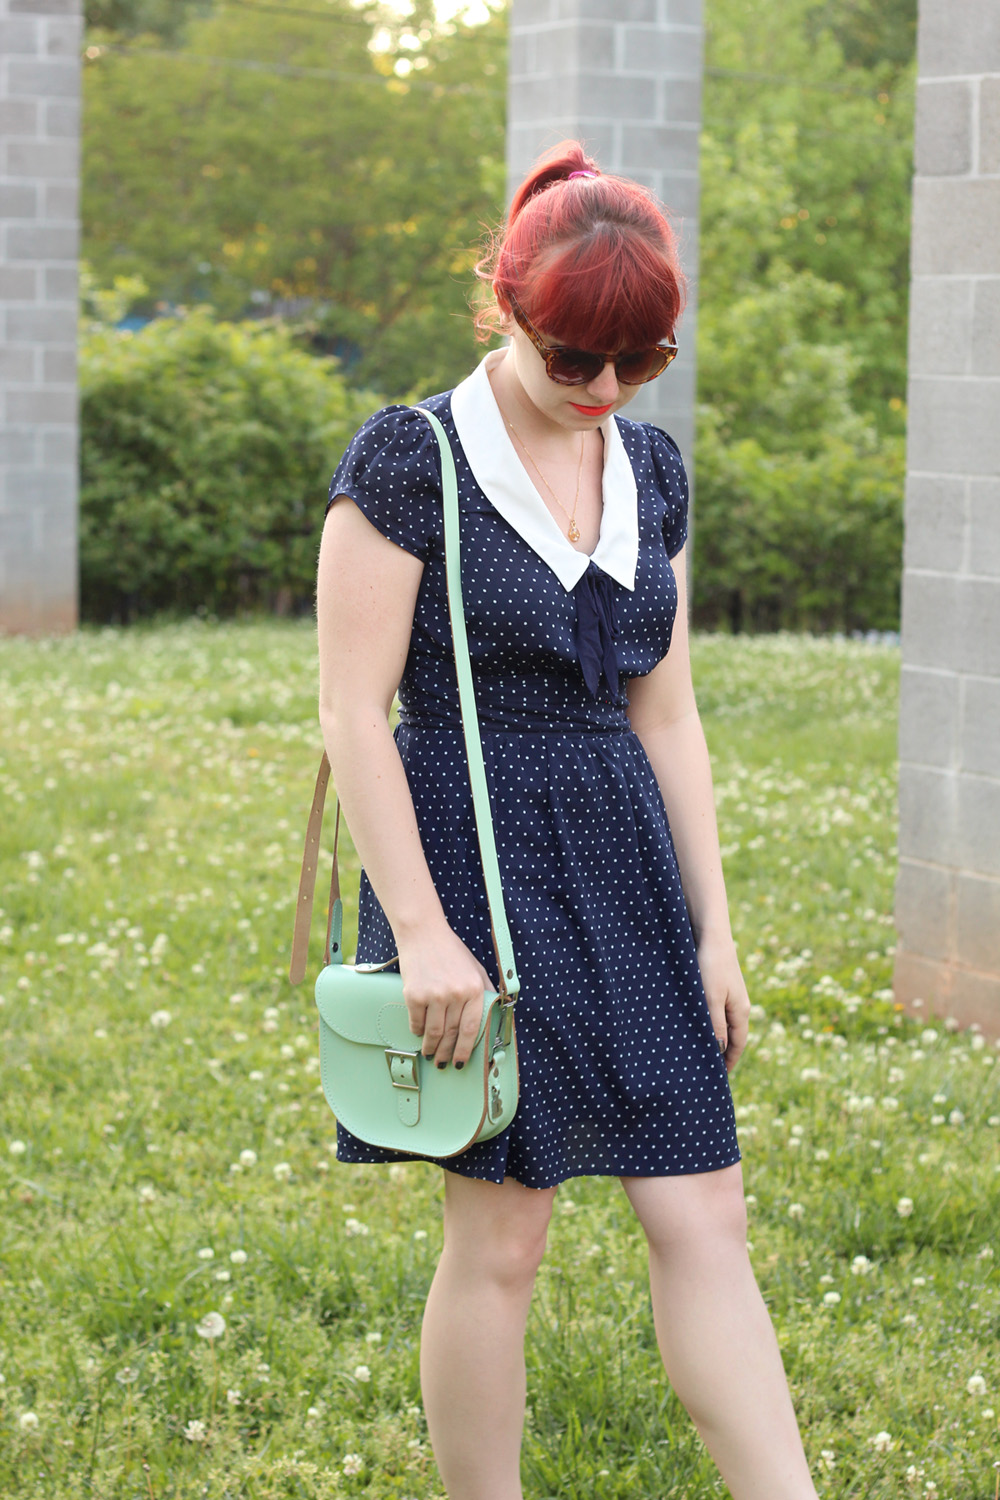 Mint Green Brit-Stitch Satchel, Navy Blue Polka Dot Dress with White Collar, Bright Red Hair